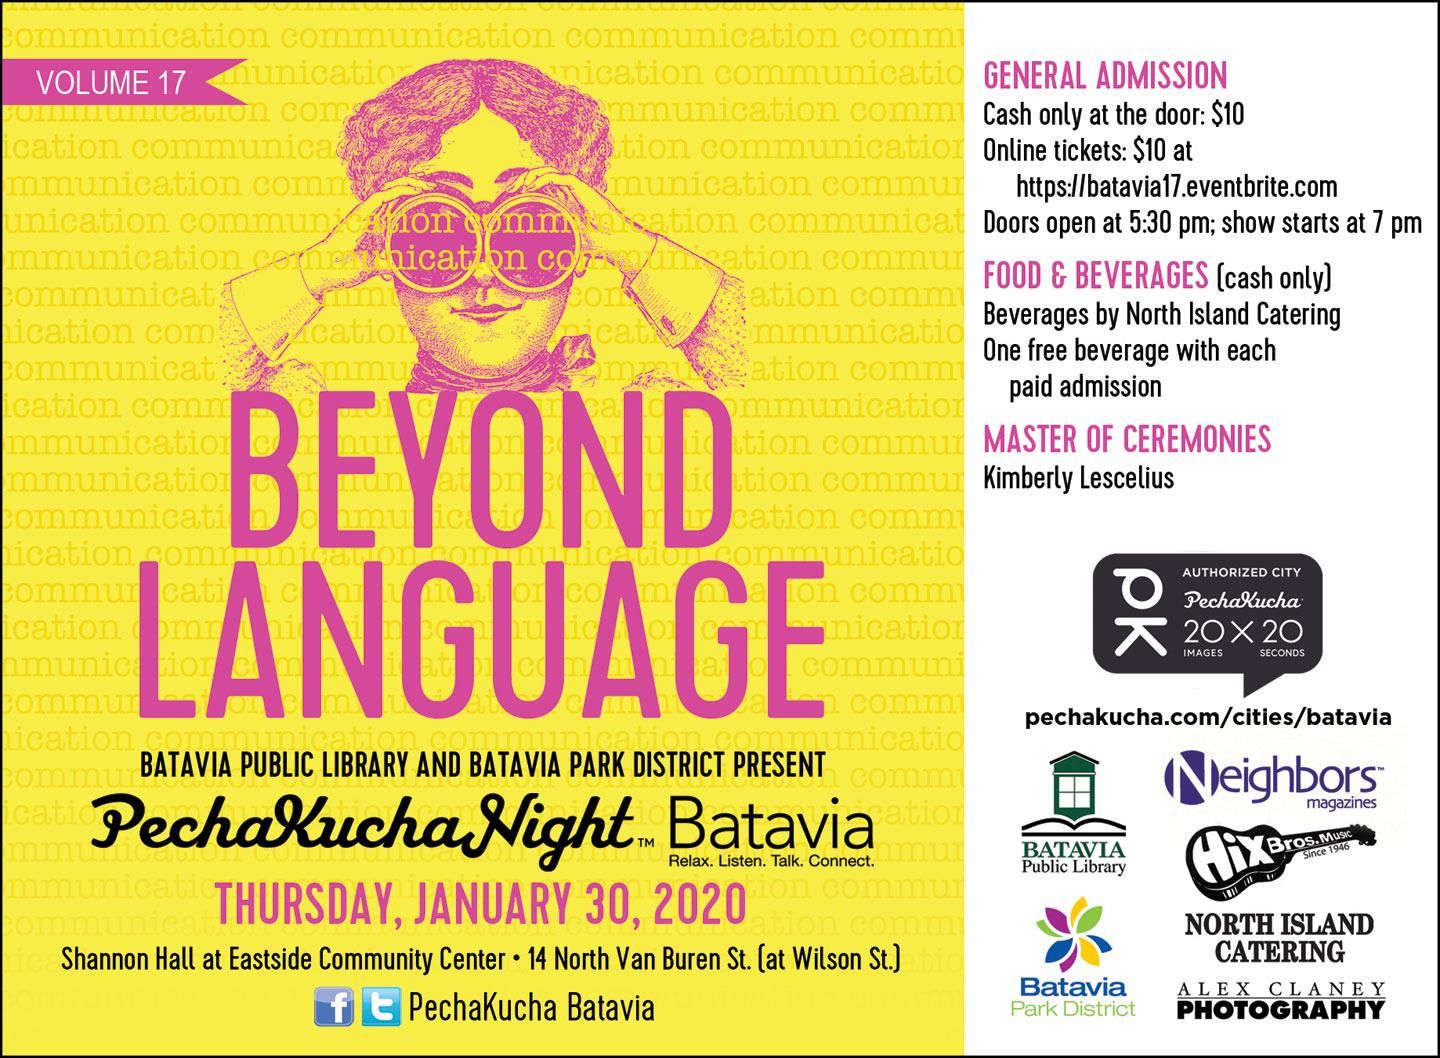 PechaKucha Night in Batavia